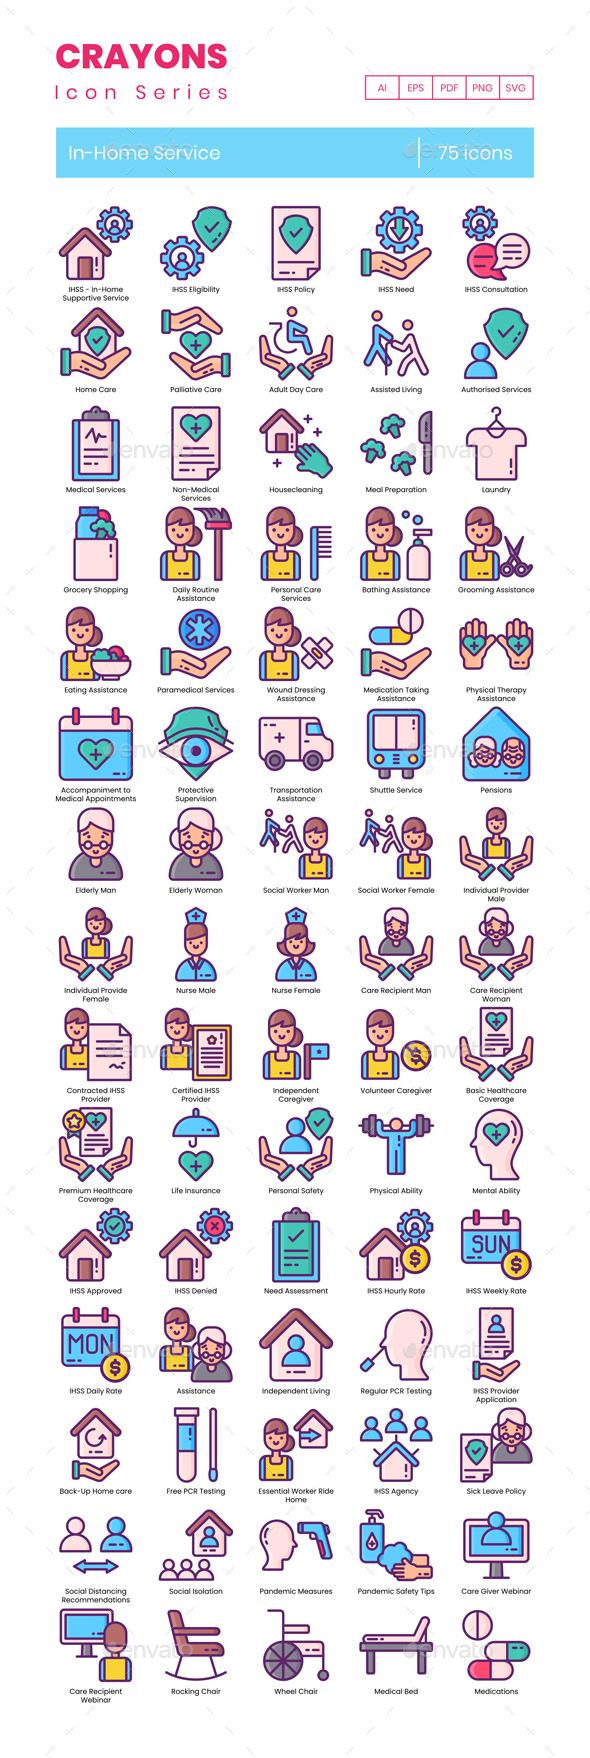 75 In-Home Services Icons | Crayons Series